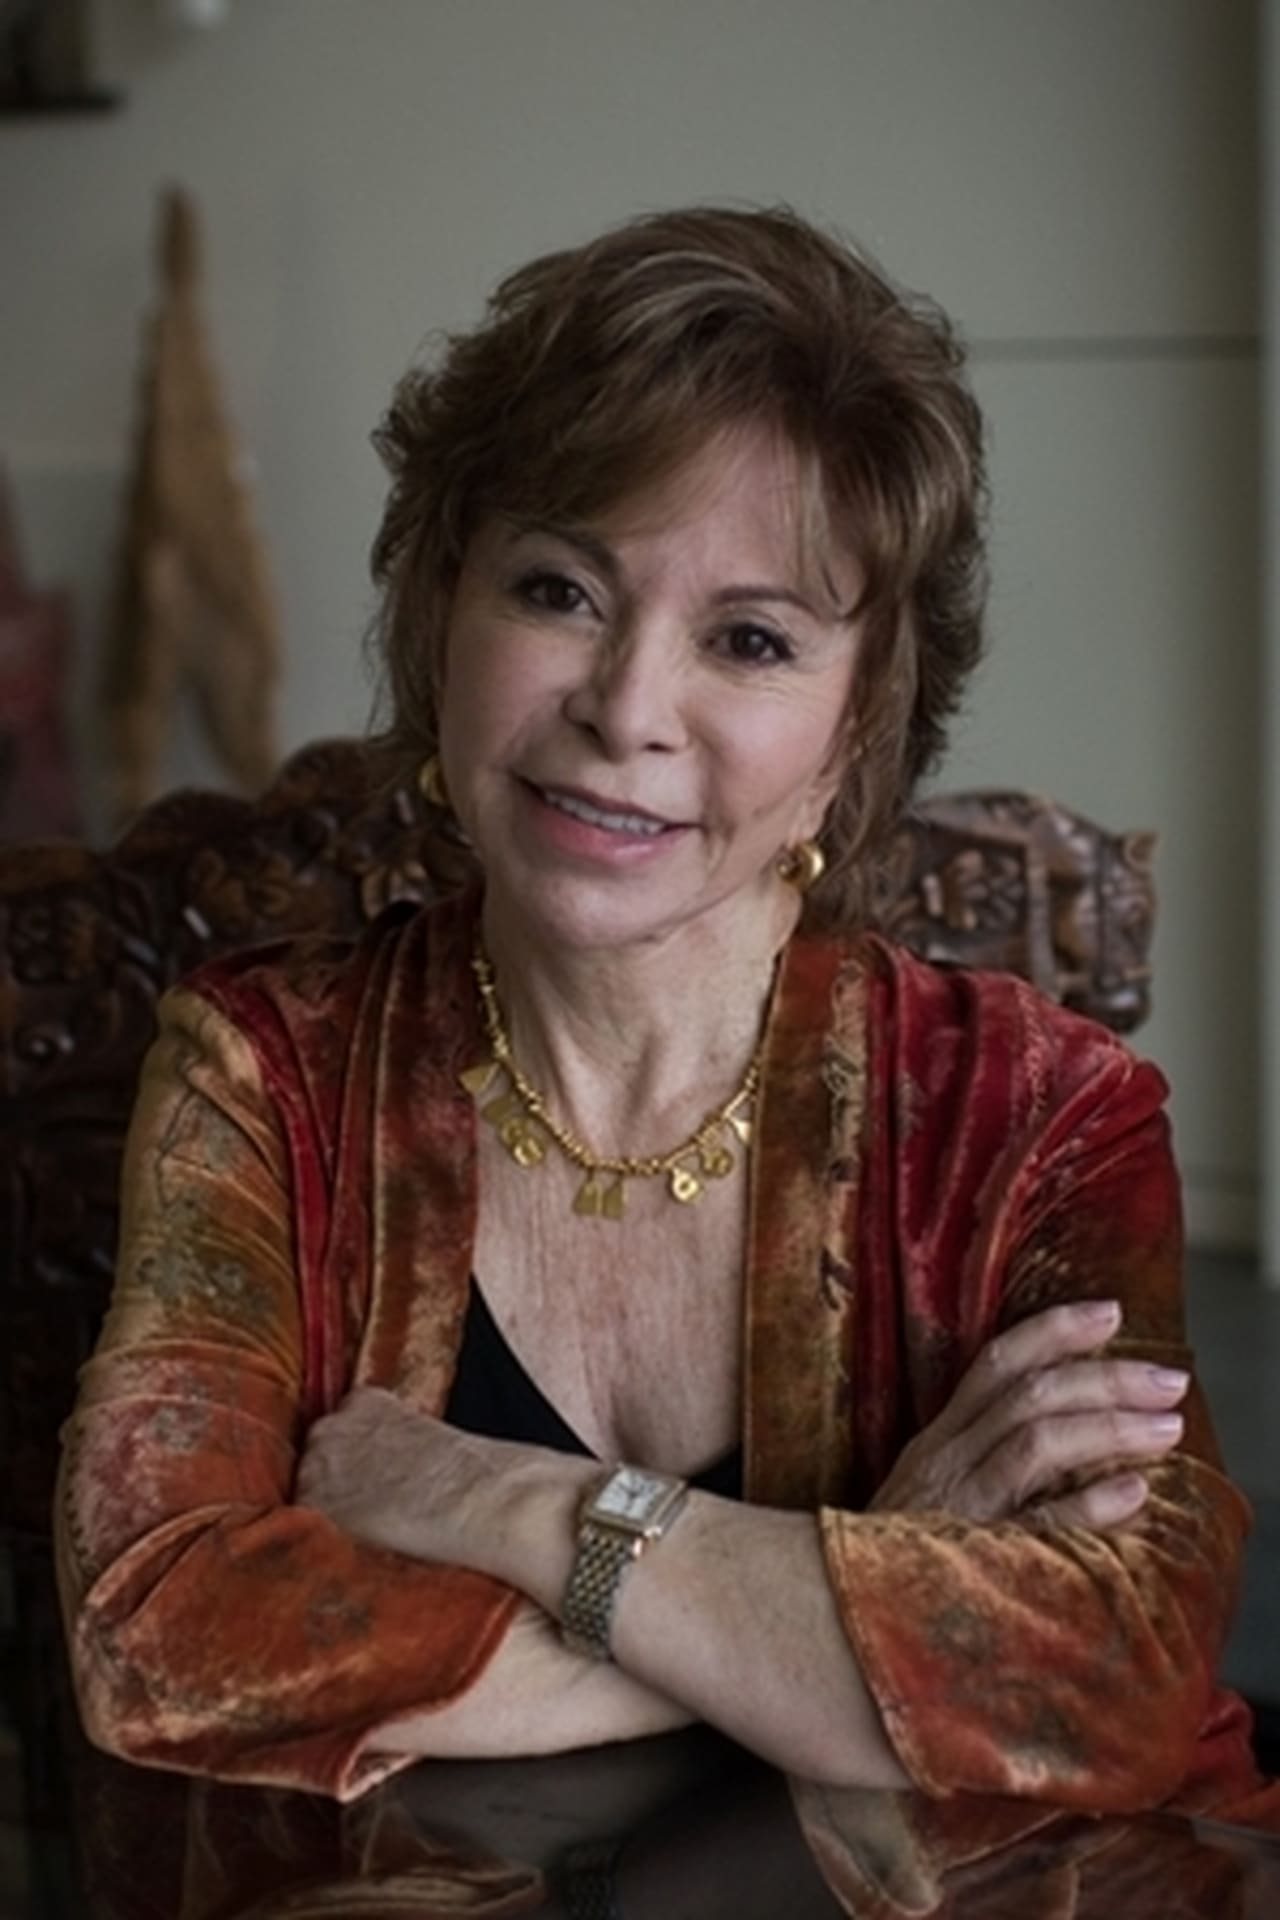 a biography of isabel allende a chilean novelist Isabel allende biography - free download as word doc (doc), pdf file (pdf), text file (txt) or read online for free.